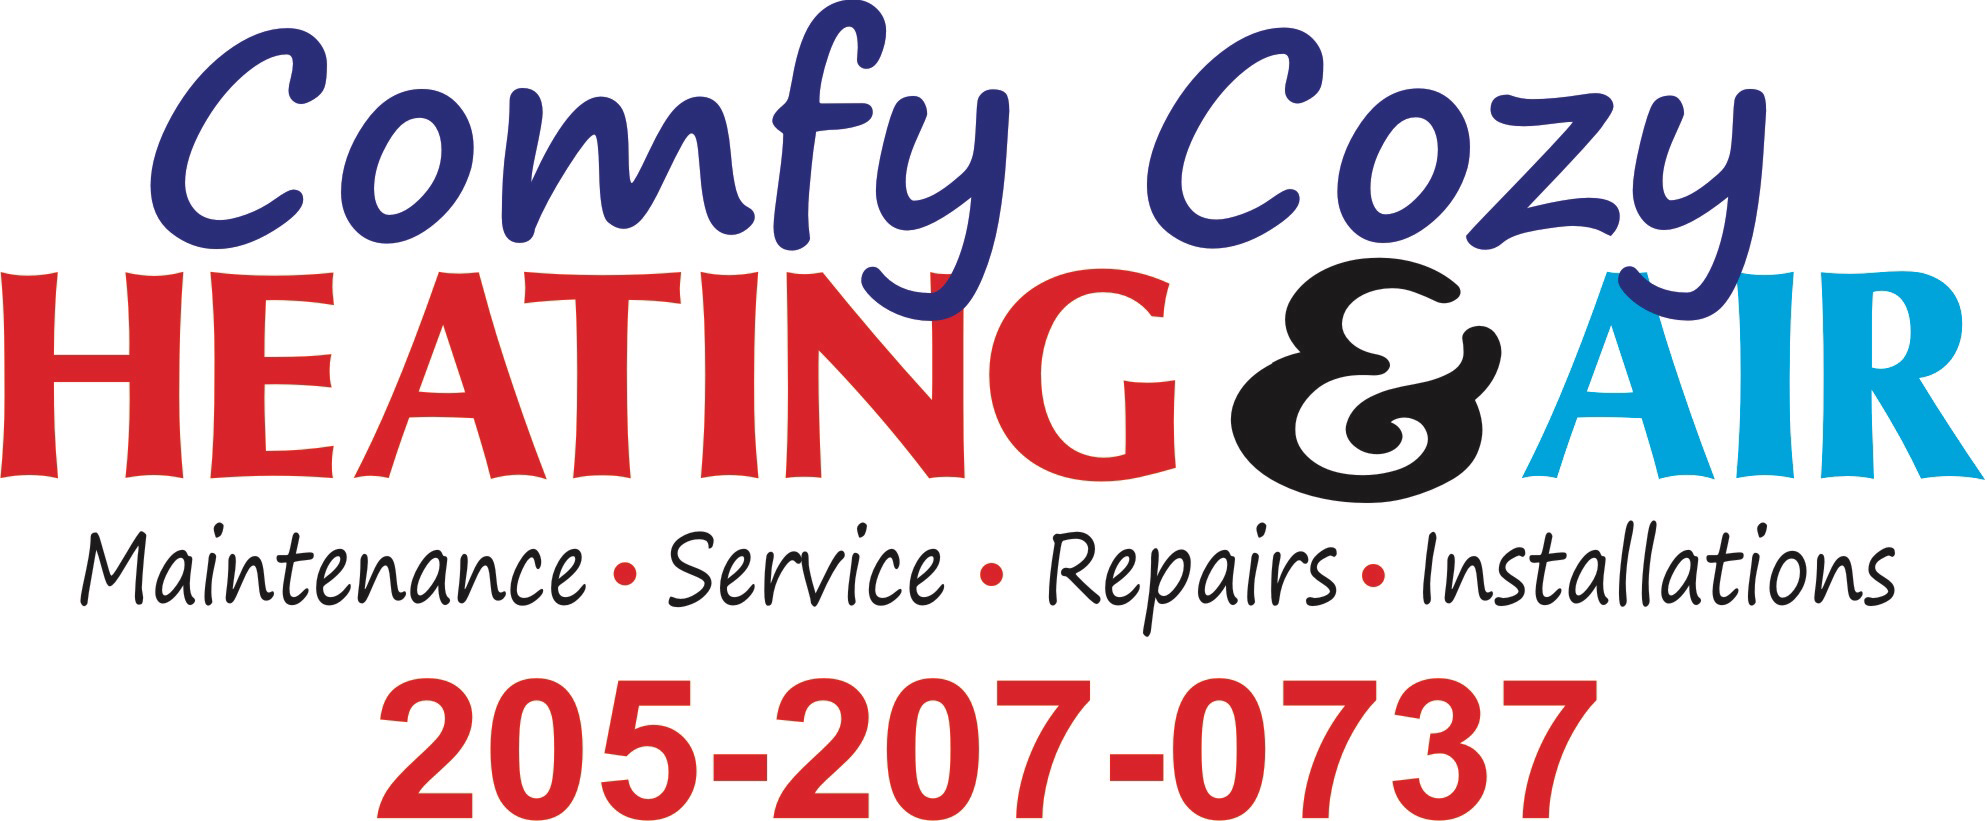 Serving Oneonta and surrounding areas